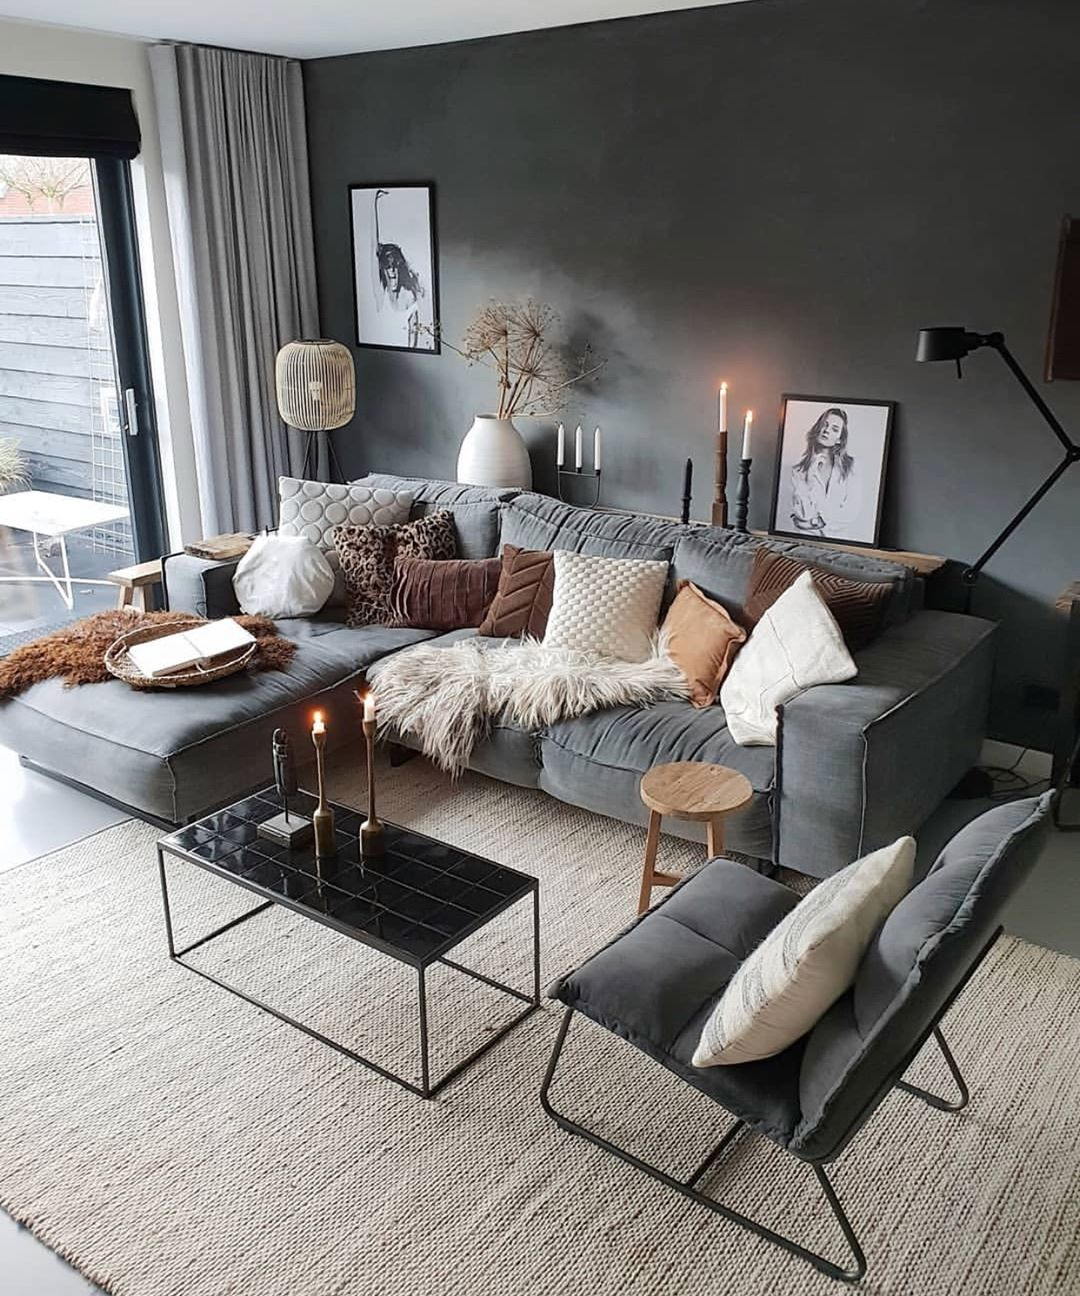 "Interior & Scandinavian Decor on Instagram: ""The beautiful, cosy living room of @huizedop"